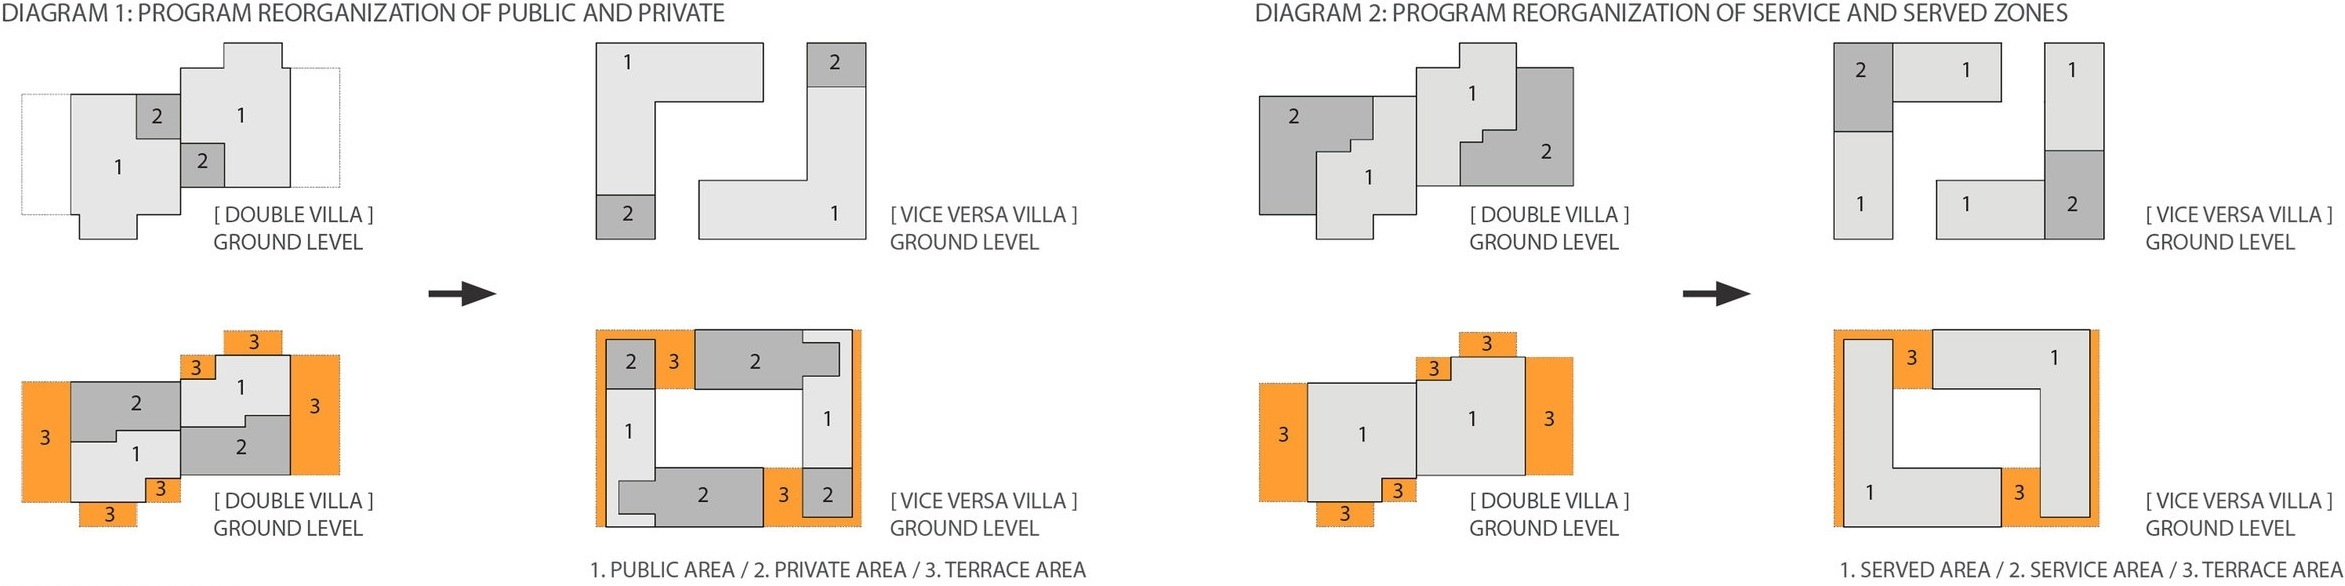 Spatial Diagram: Double Villa's Plan Analysis and Program Reorganization